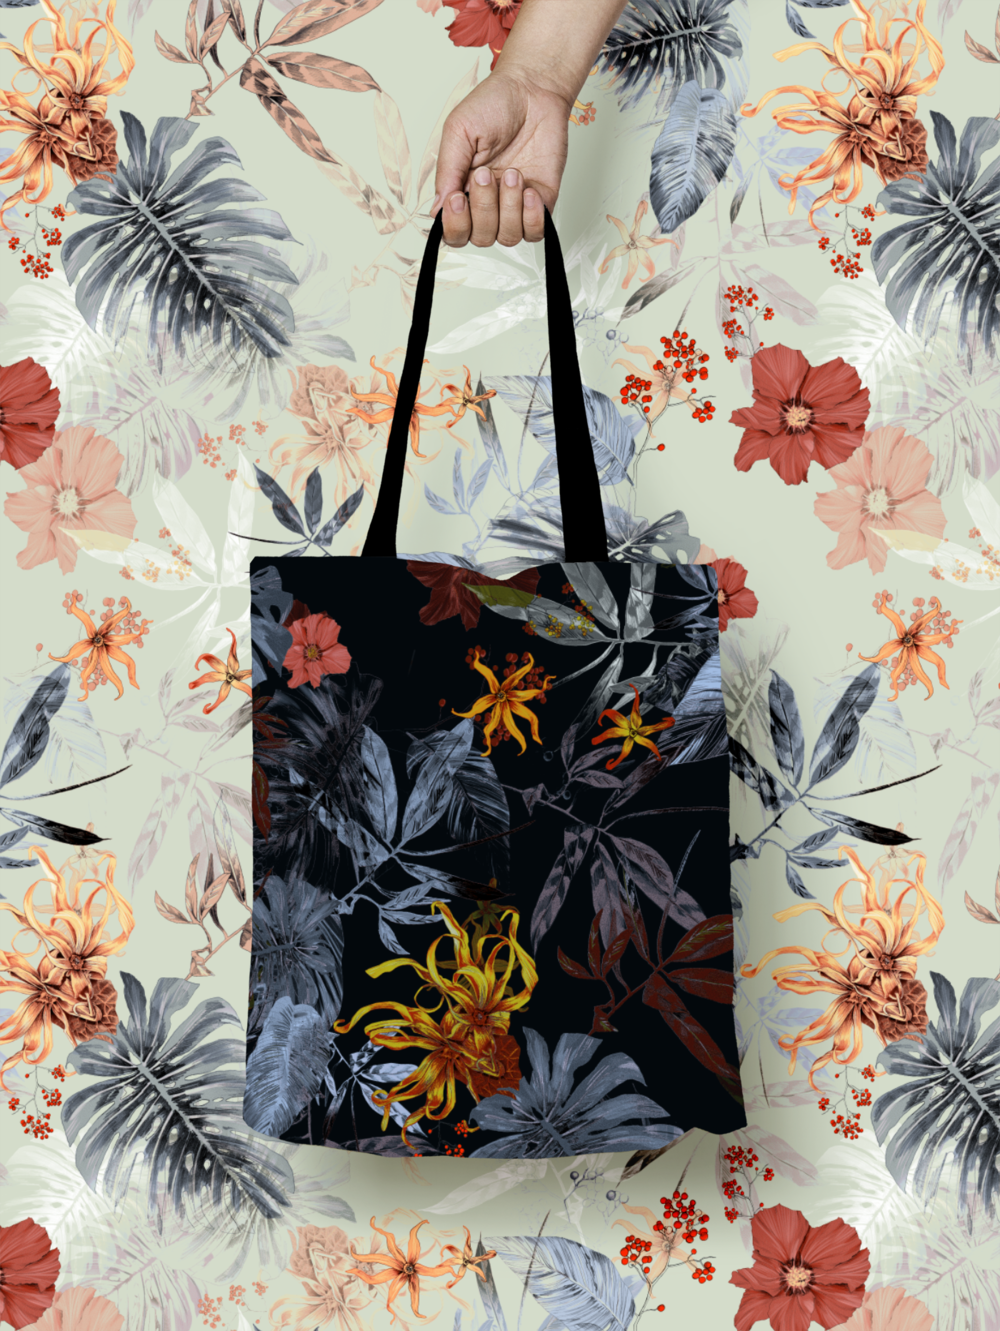 fig. 4. Patterned totebag